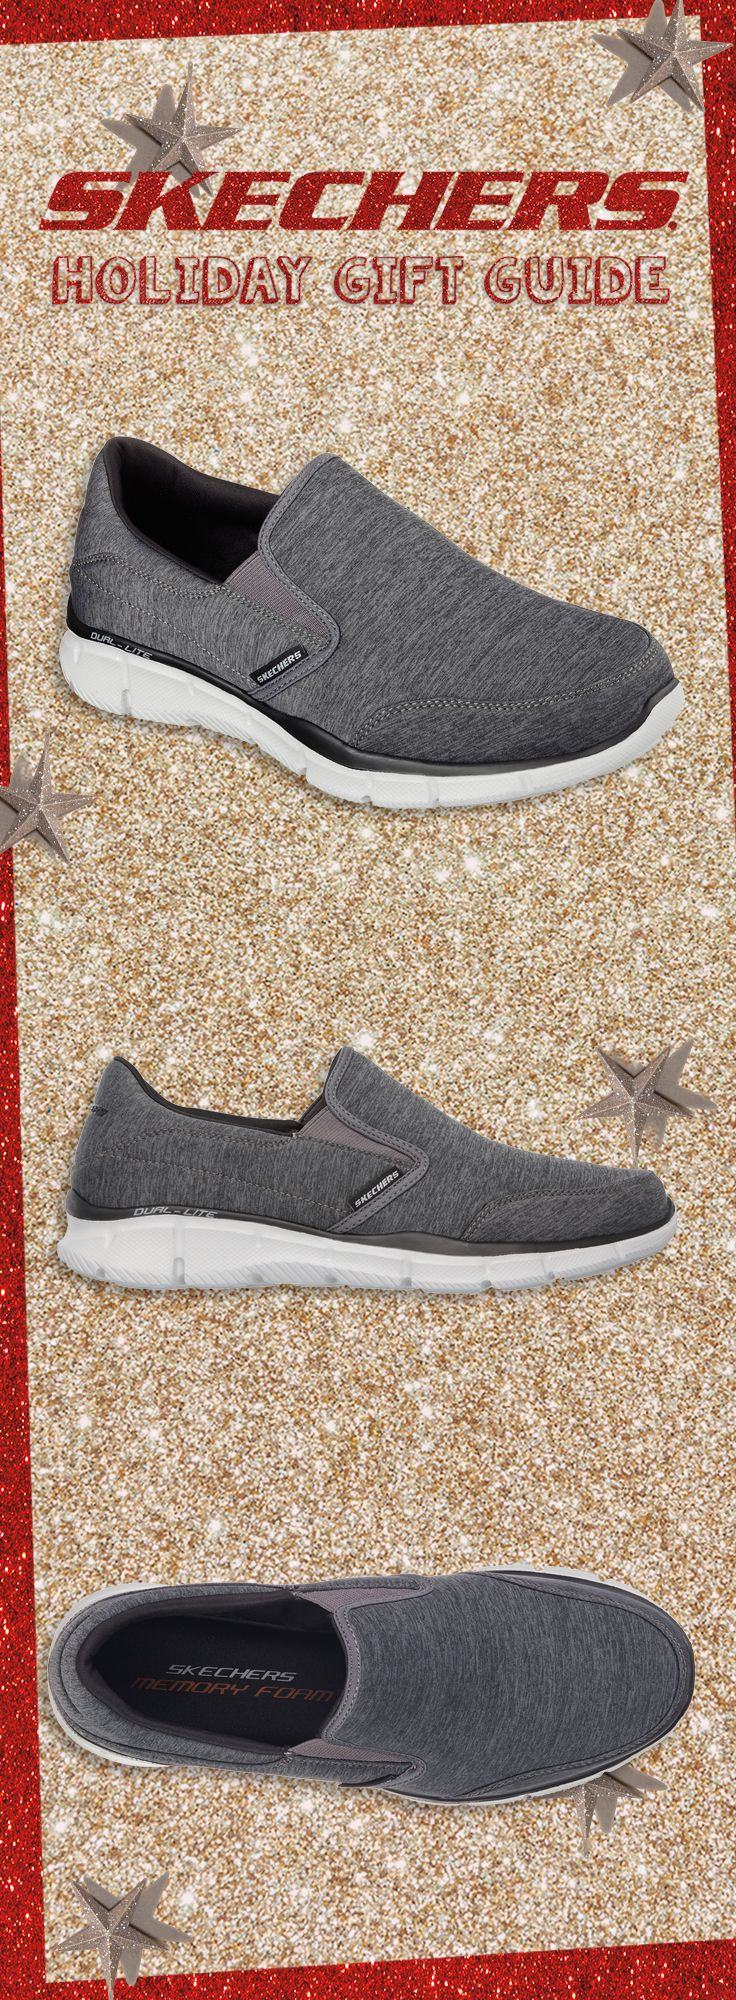 A Forward Thinking style for him. #SKECHERSholiday